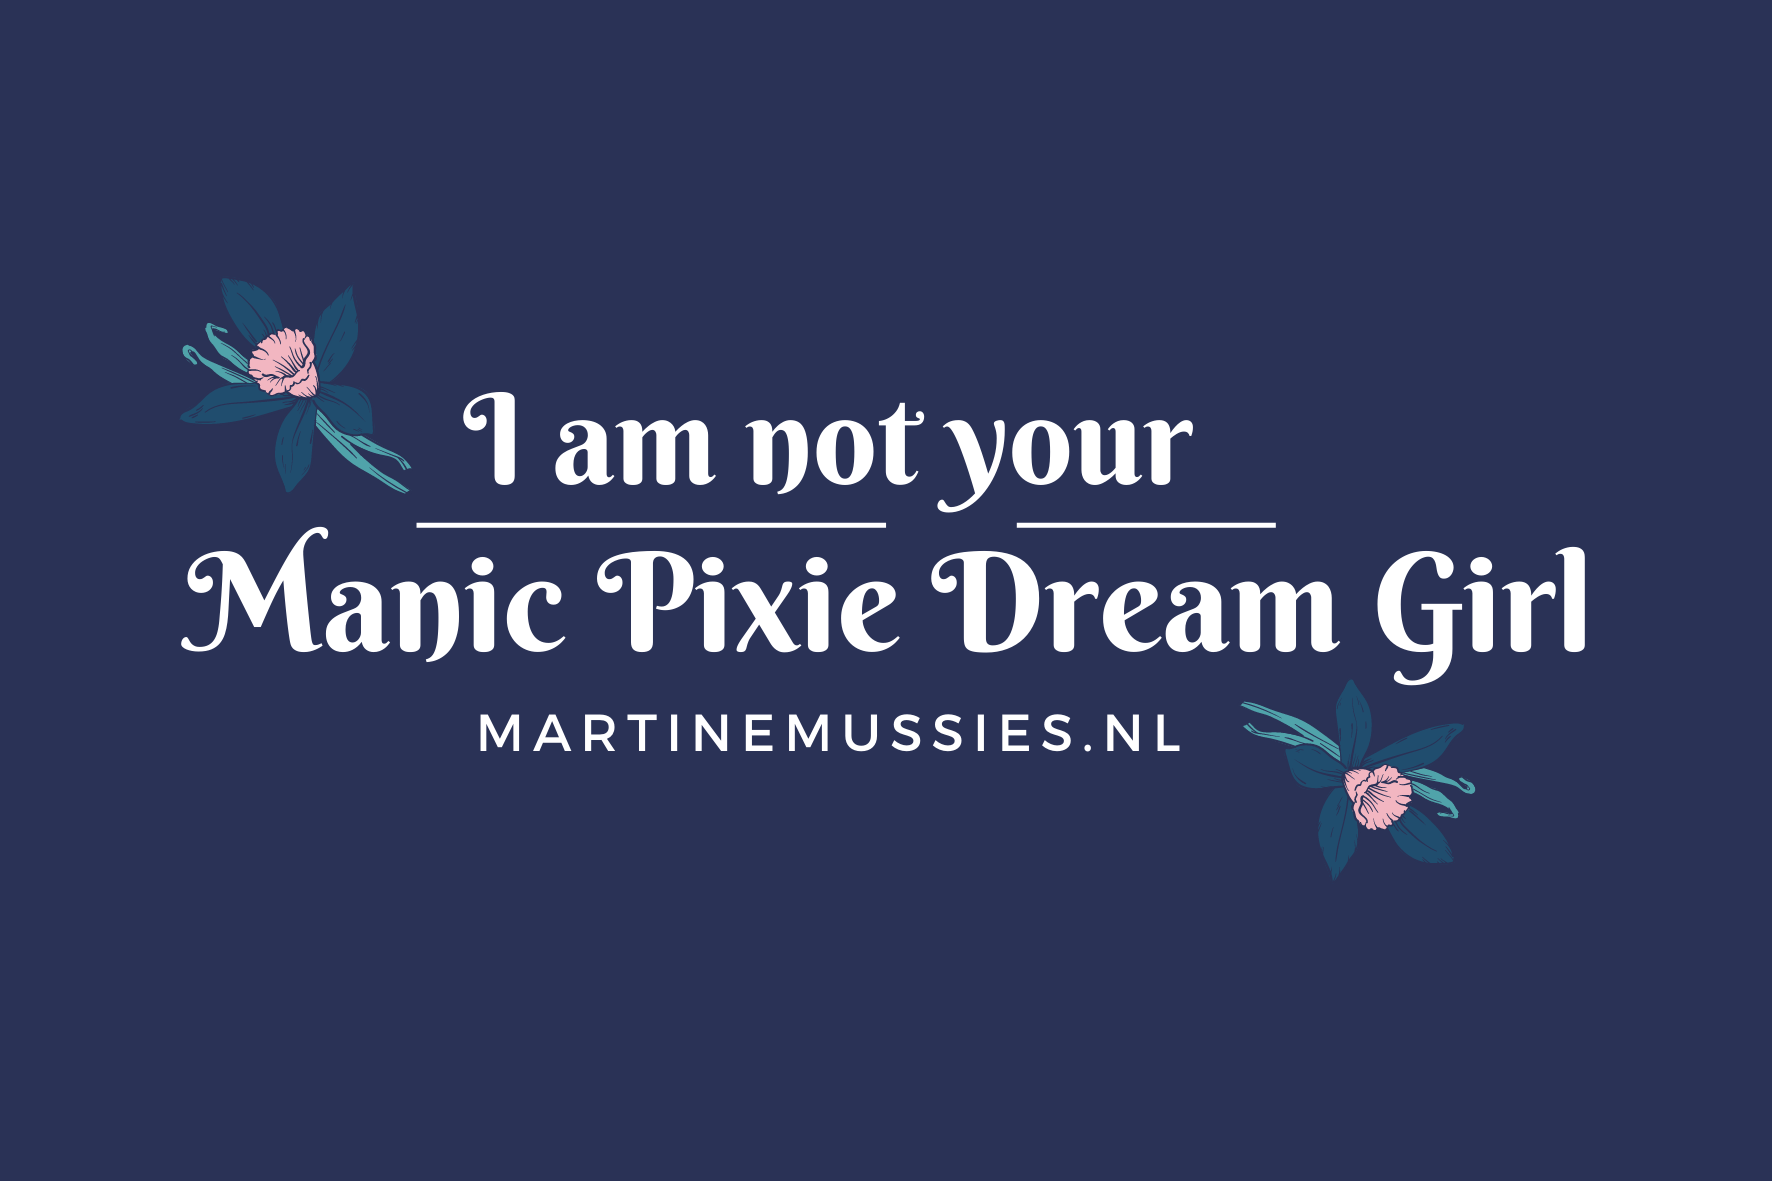 I am not your Manic Pixie Dream Girl